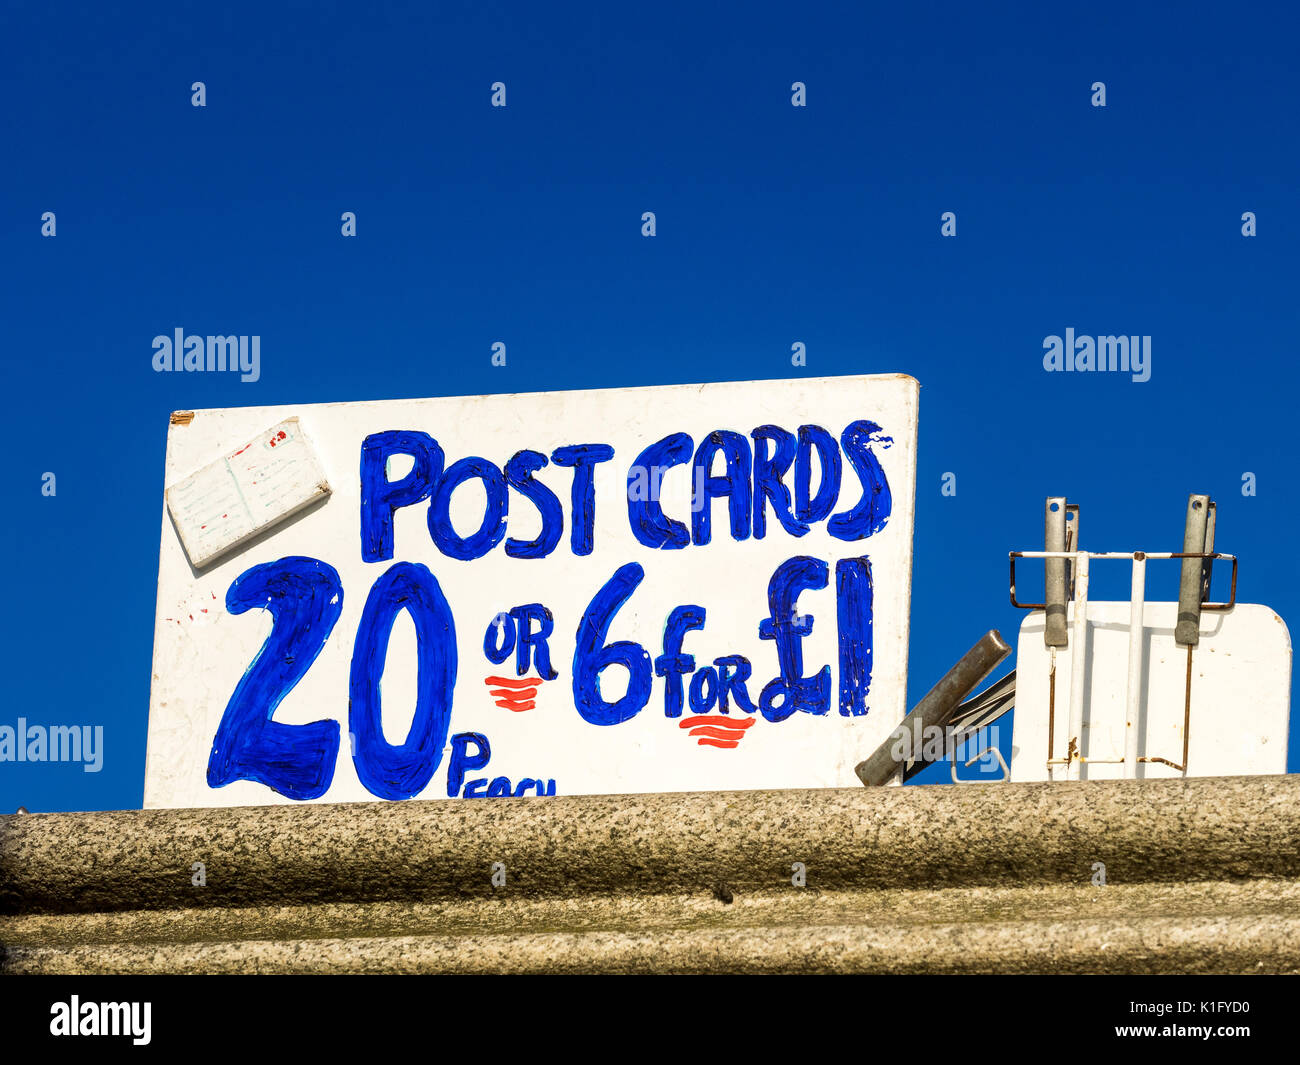 Postcards for Sale sign on London's Southbank riverside walk - Stock Image